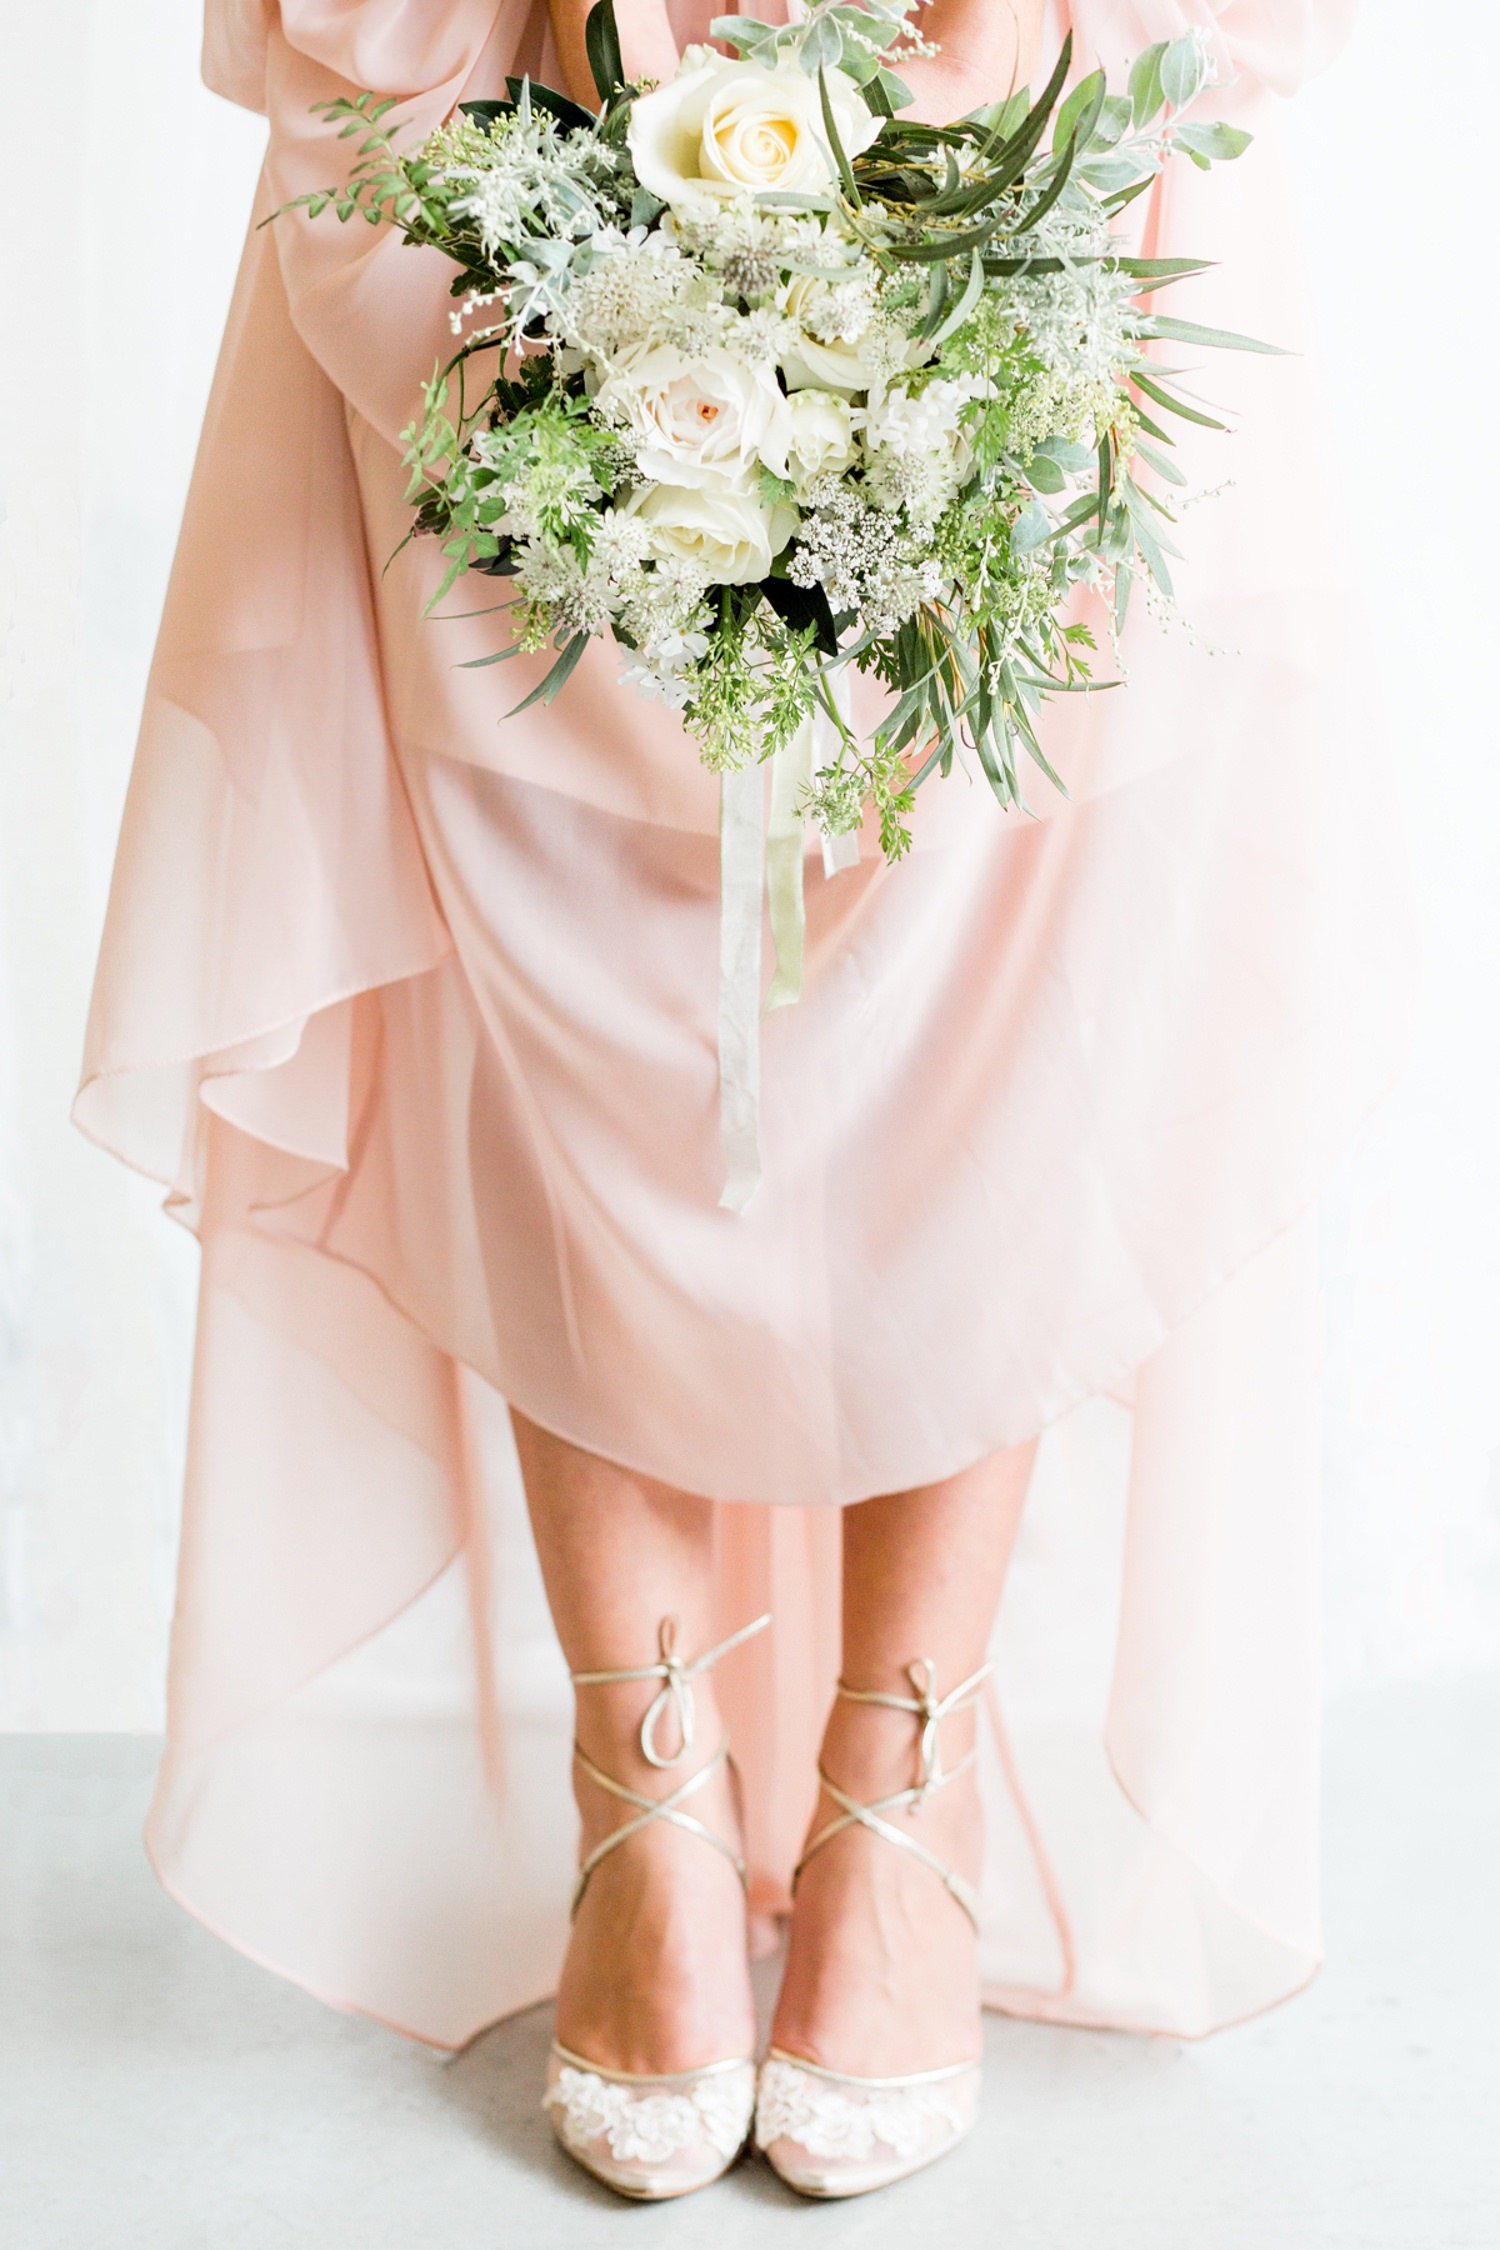 Industrial Chic Botanical Wedding 8 - beautiful strappy shoes from bella belle shoes